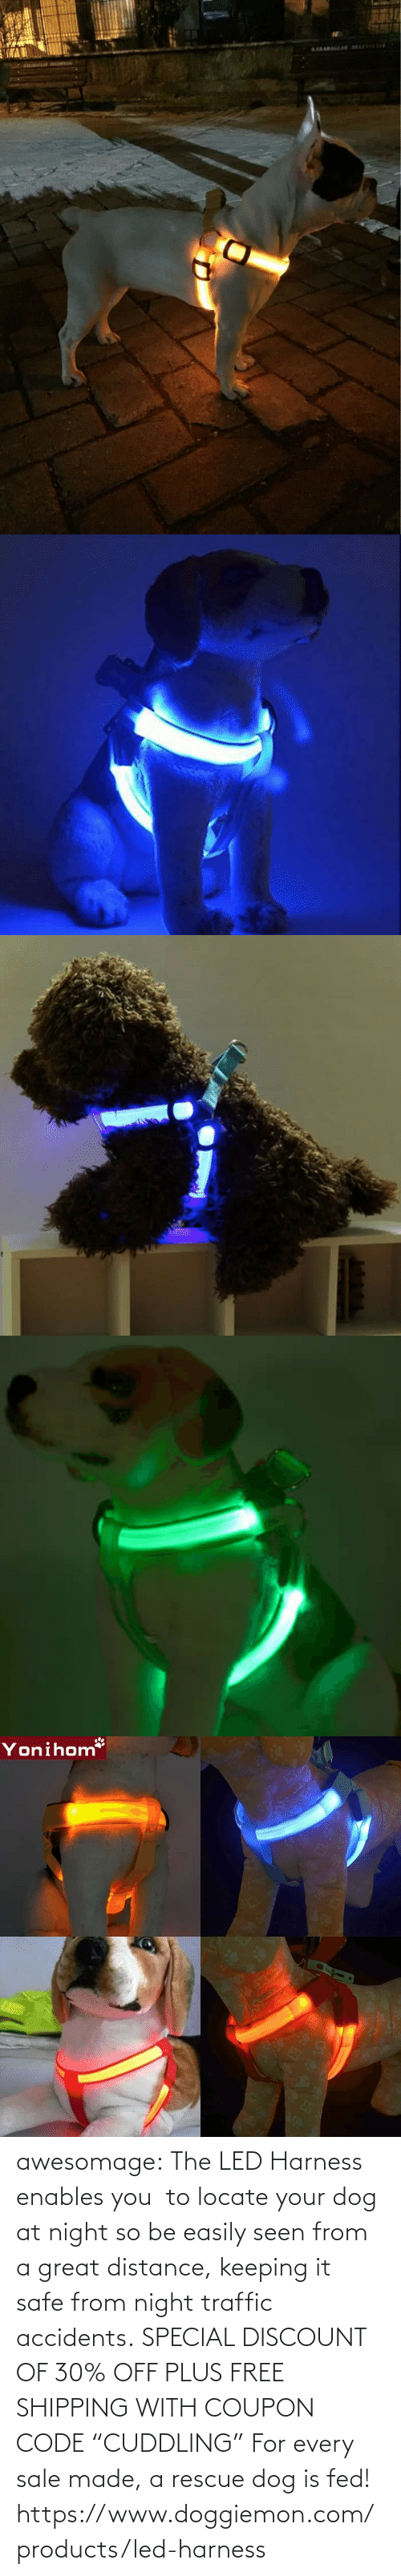 """Traffic, Tumblr, and Blog: awesomage:   The LED Harness enables you to locate your dog at night so be easily seen from a great distance, keeping it safe from night traffic accidents. SPECIAL DISCOUNT OF 30% OFF PLUS FREE SHIPPING WITH COUPON CODE """"CUDDLING"""" For every sale made, a rescue dog is fed!   https://www.doggiemon.com/products/led-harness"""